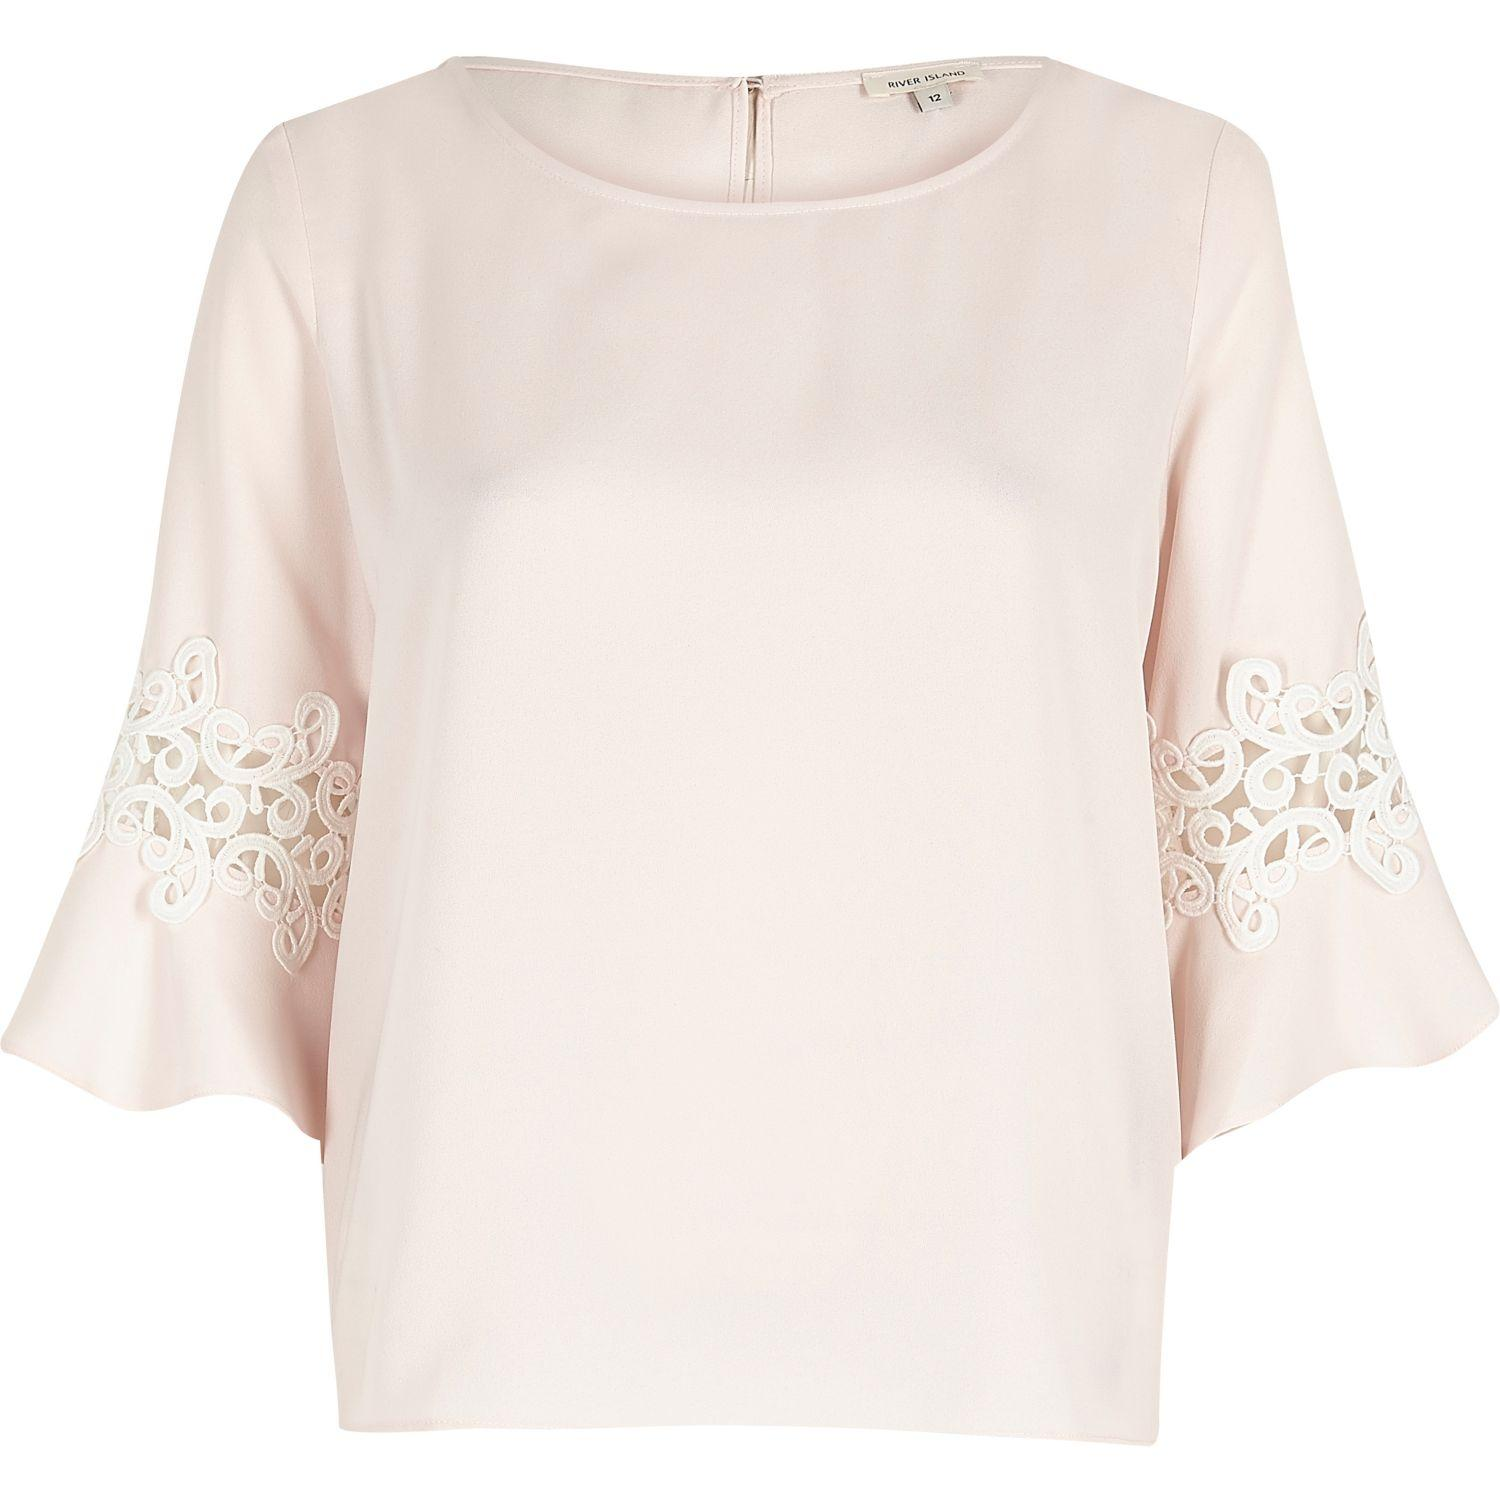 bcd6e9e0936b0 Lyst - River Island Light Pink Lace Trim Bell Sleeve Top in Pink